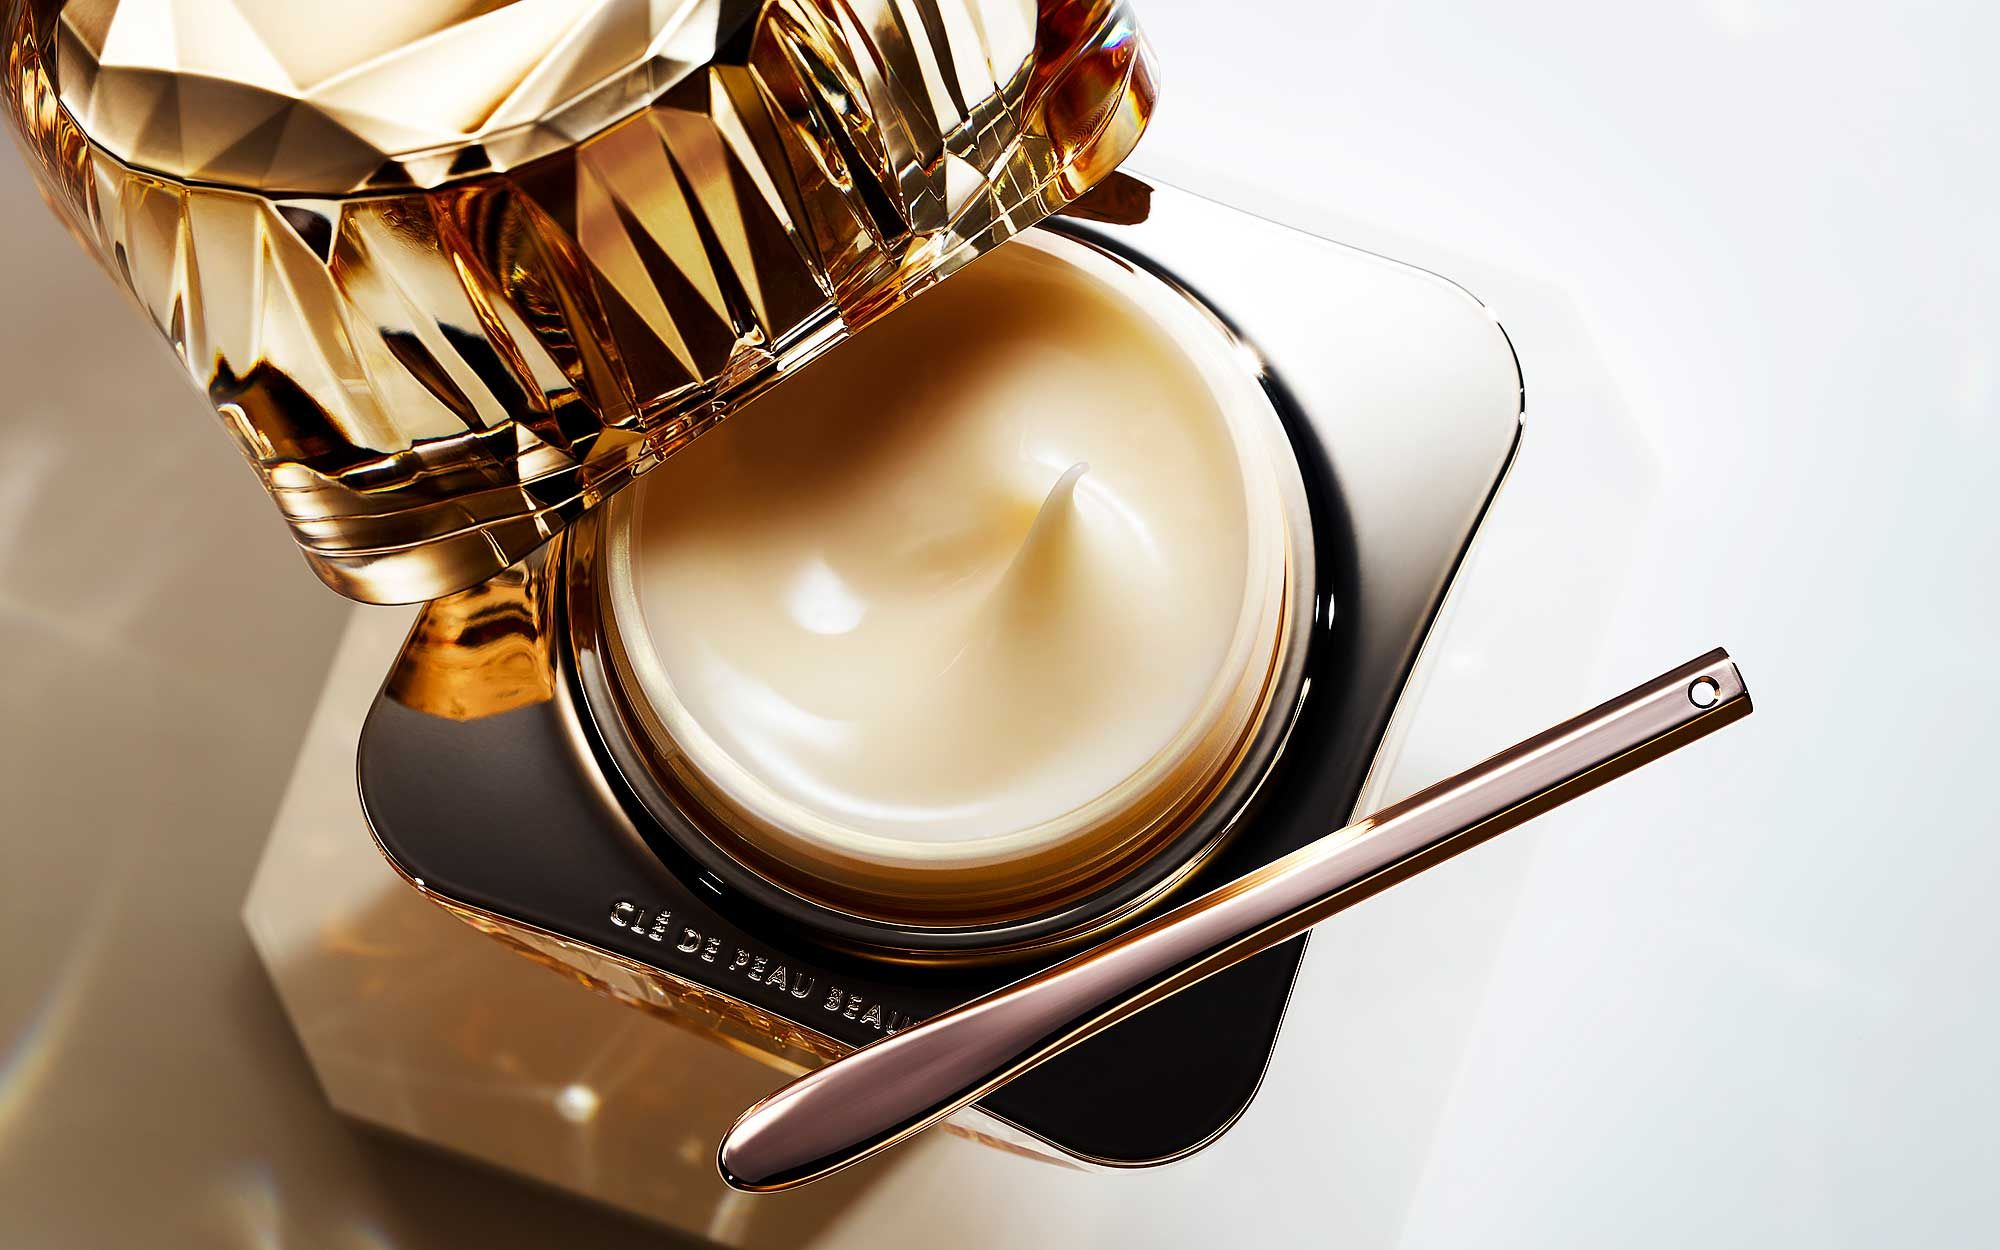 Amp Up Your Beauty Routine With Clé de Peau Beauté's Newest Luxury Night Cream, La Crème